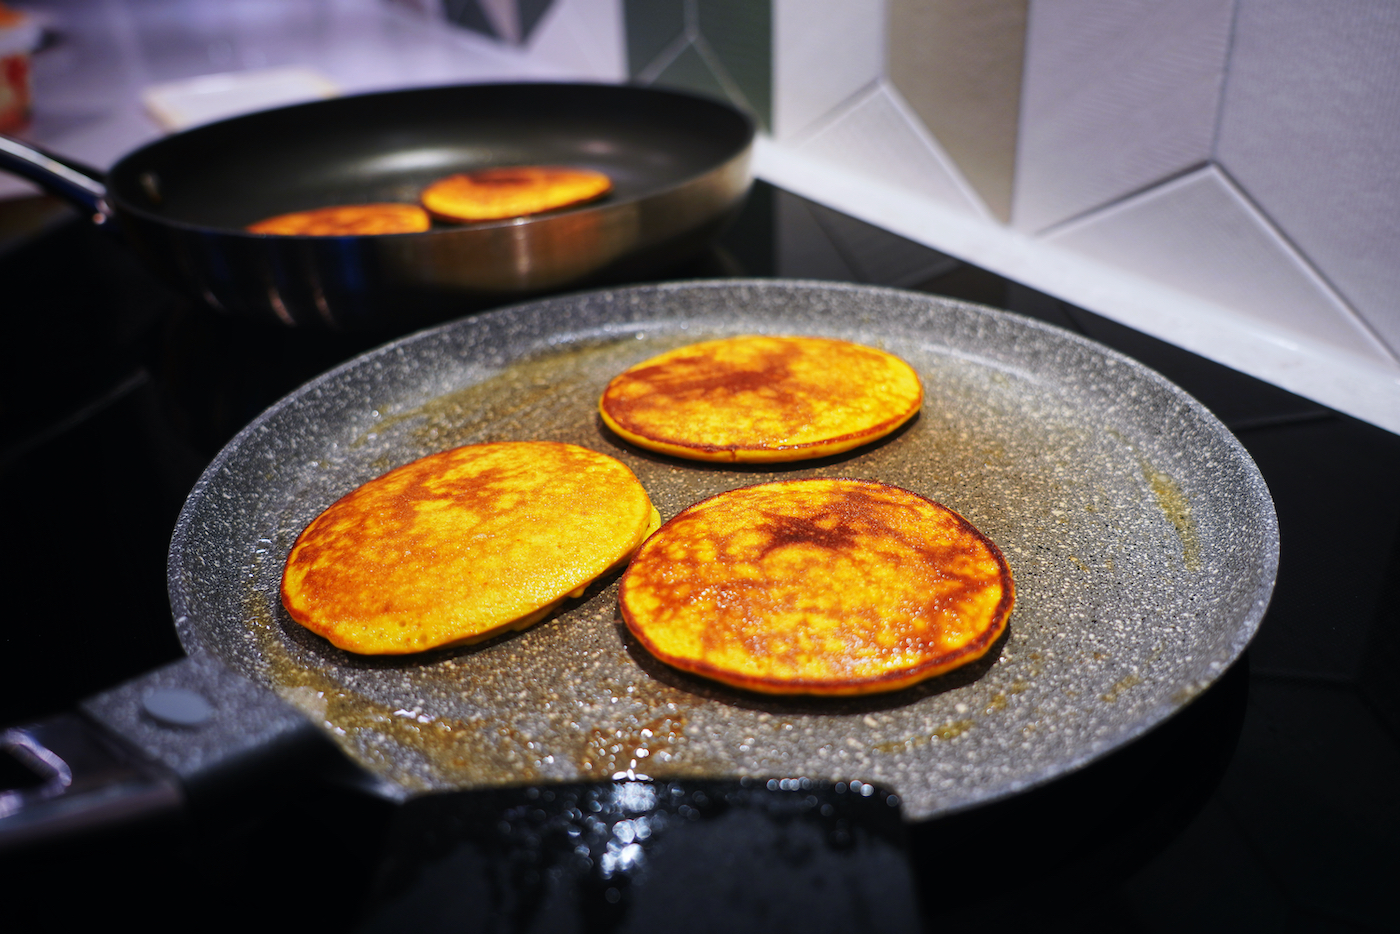 Banana and saffron pancakes in the pan fried on one side